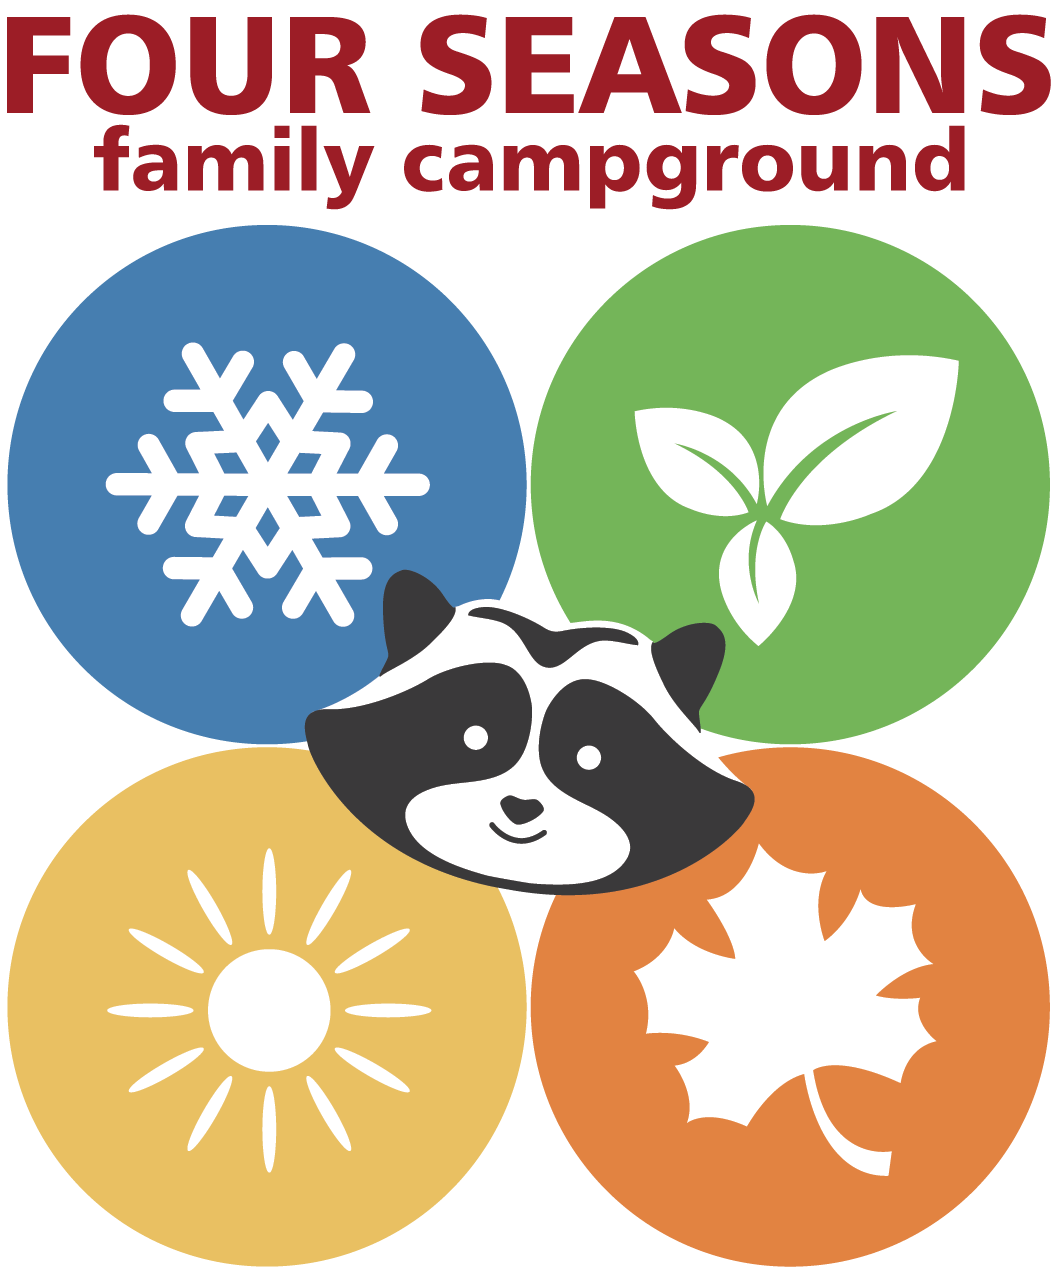 Four seasons family campground. Firewood clipart bonfire night